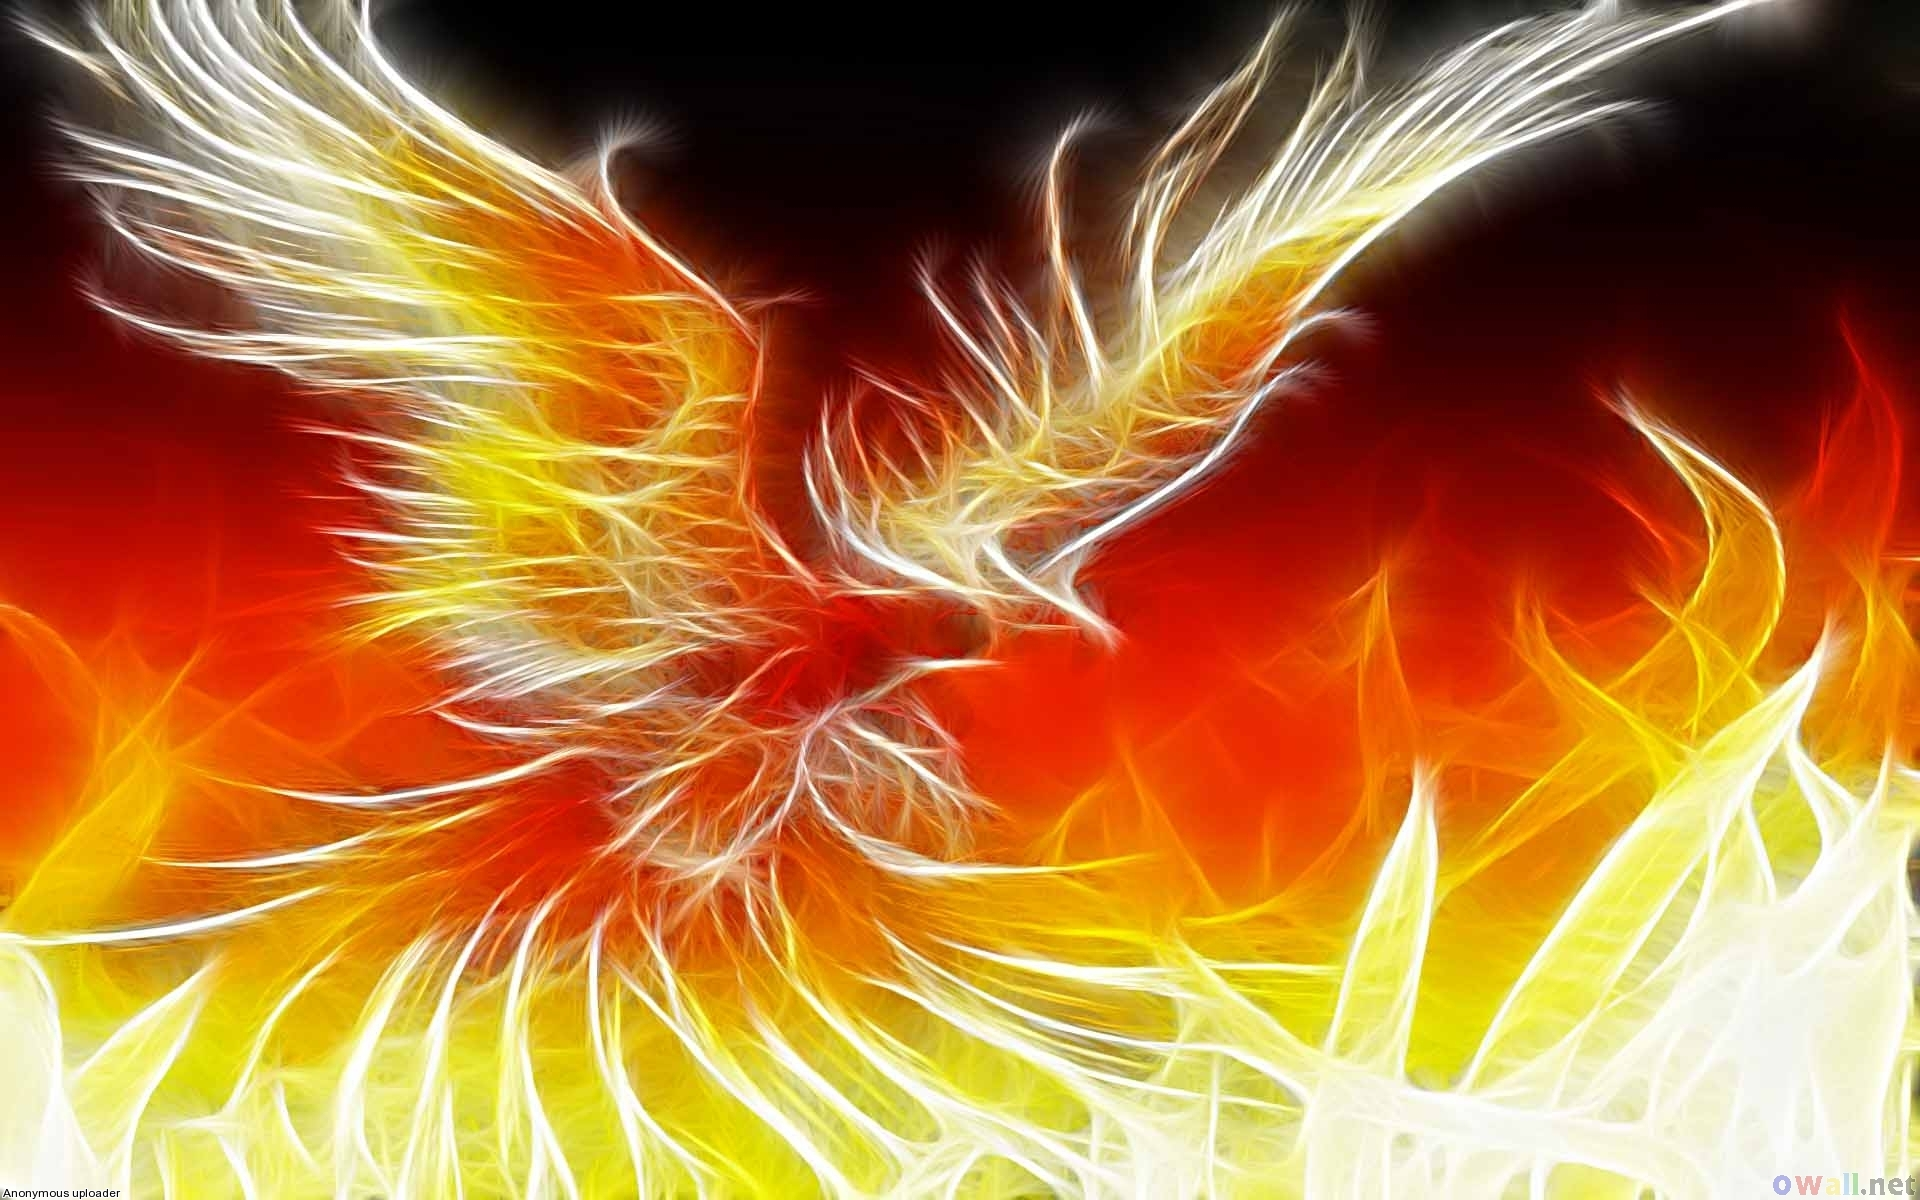 Phoenix Computer Wallpapers Desktop Backgrounds 1920x1200 ID 1920x1200